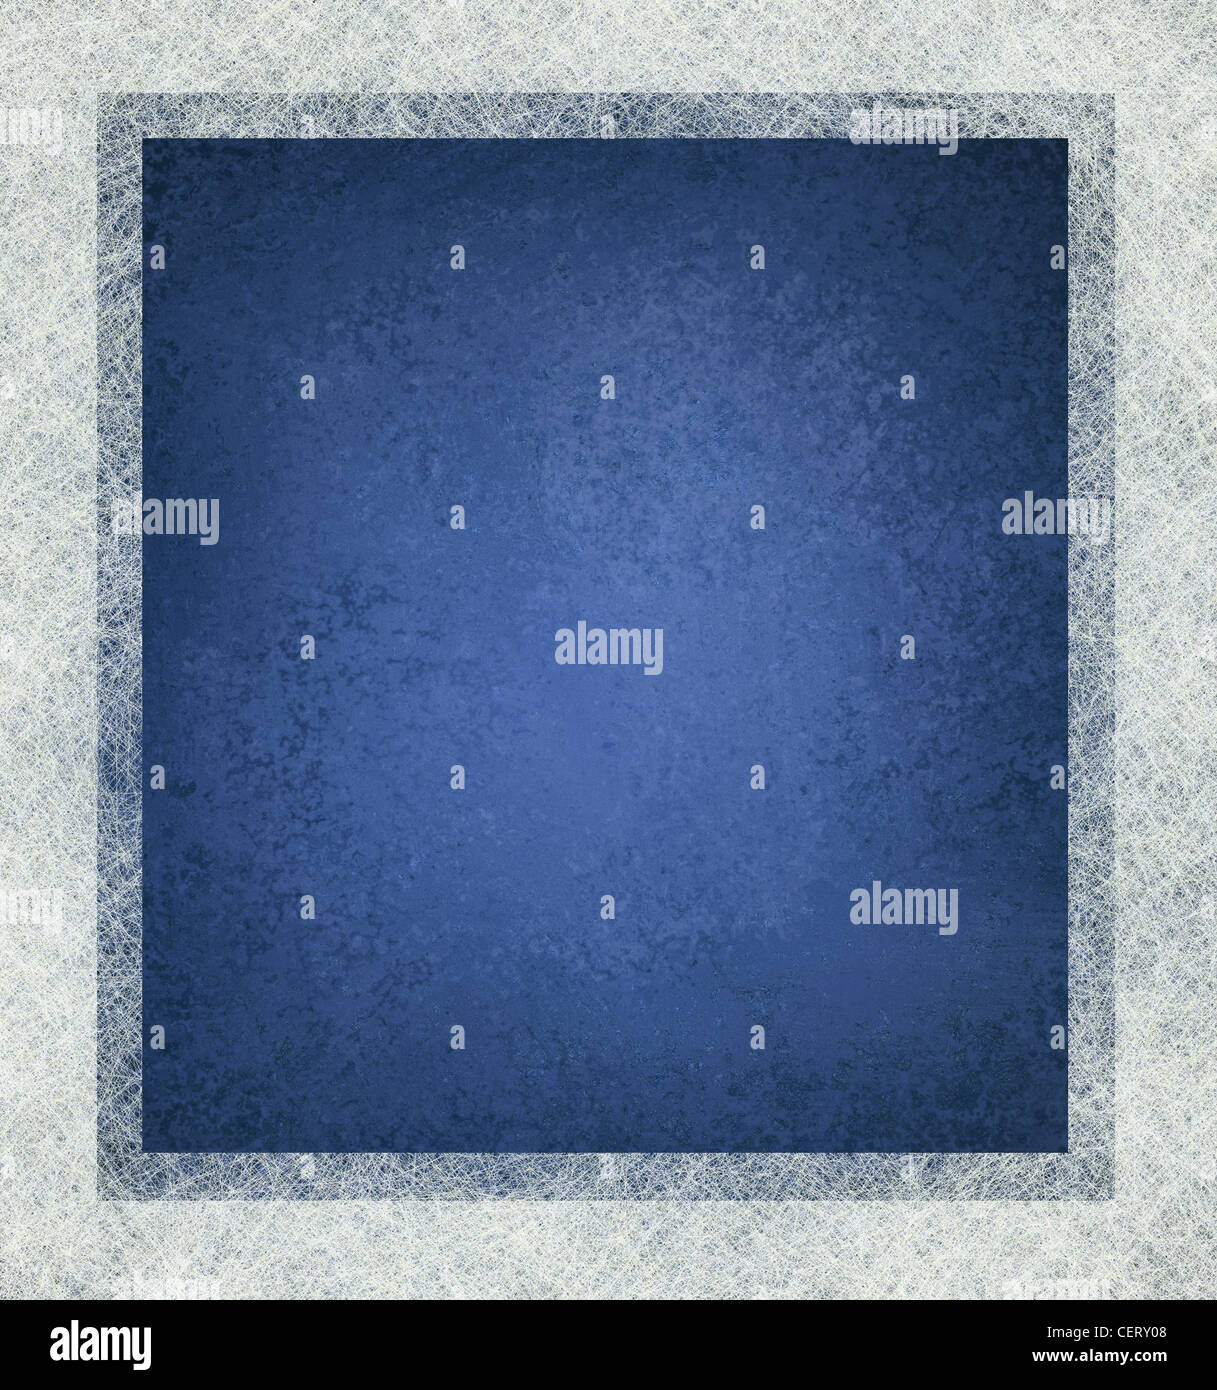 blue background with white frame and lots of texture, blue and white layout design - Stock Image